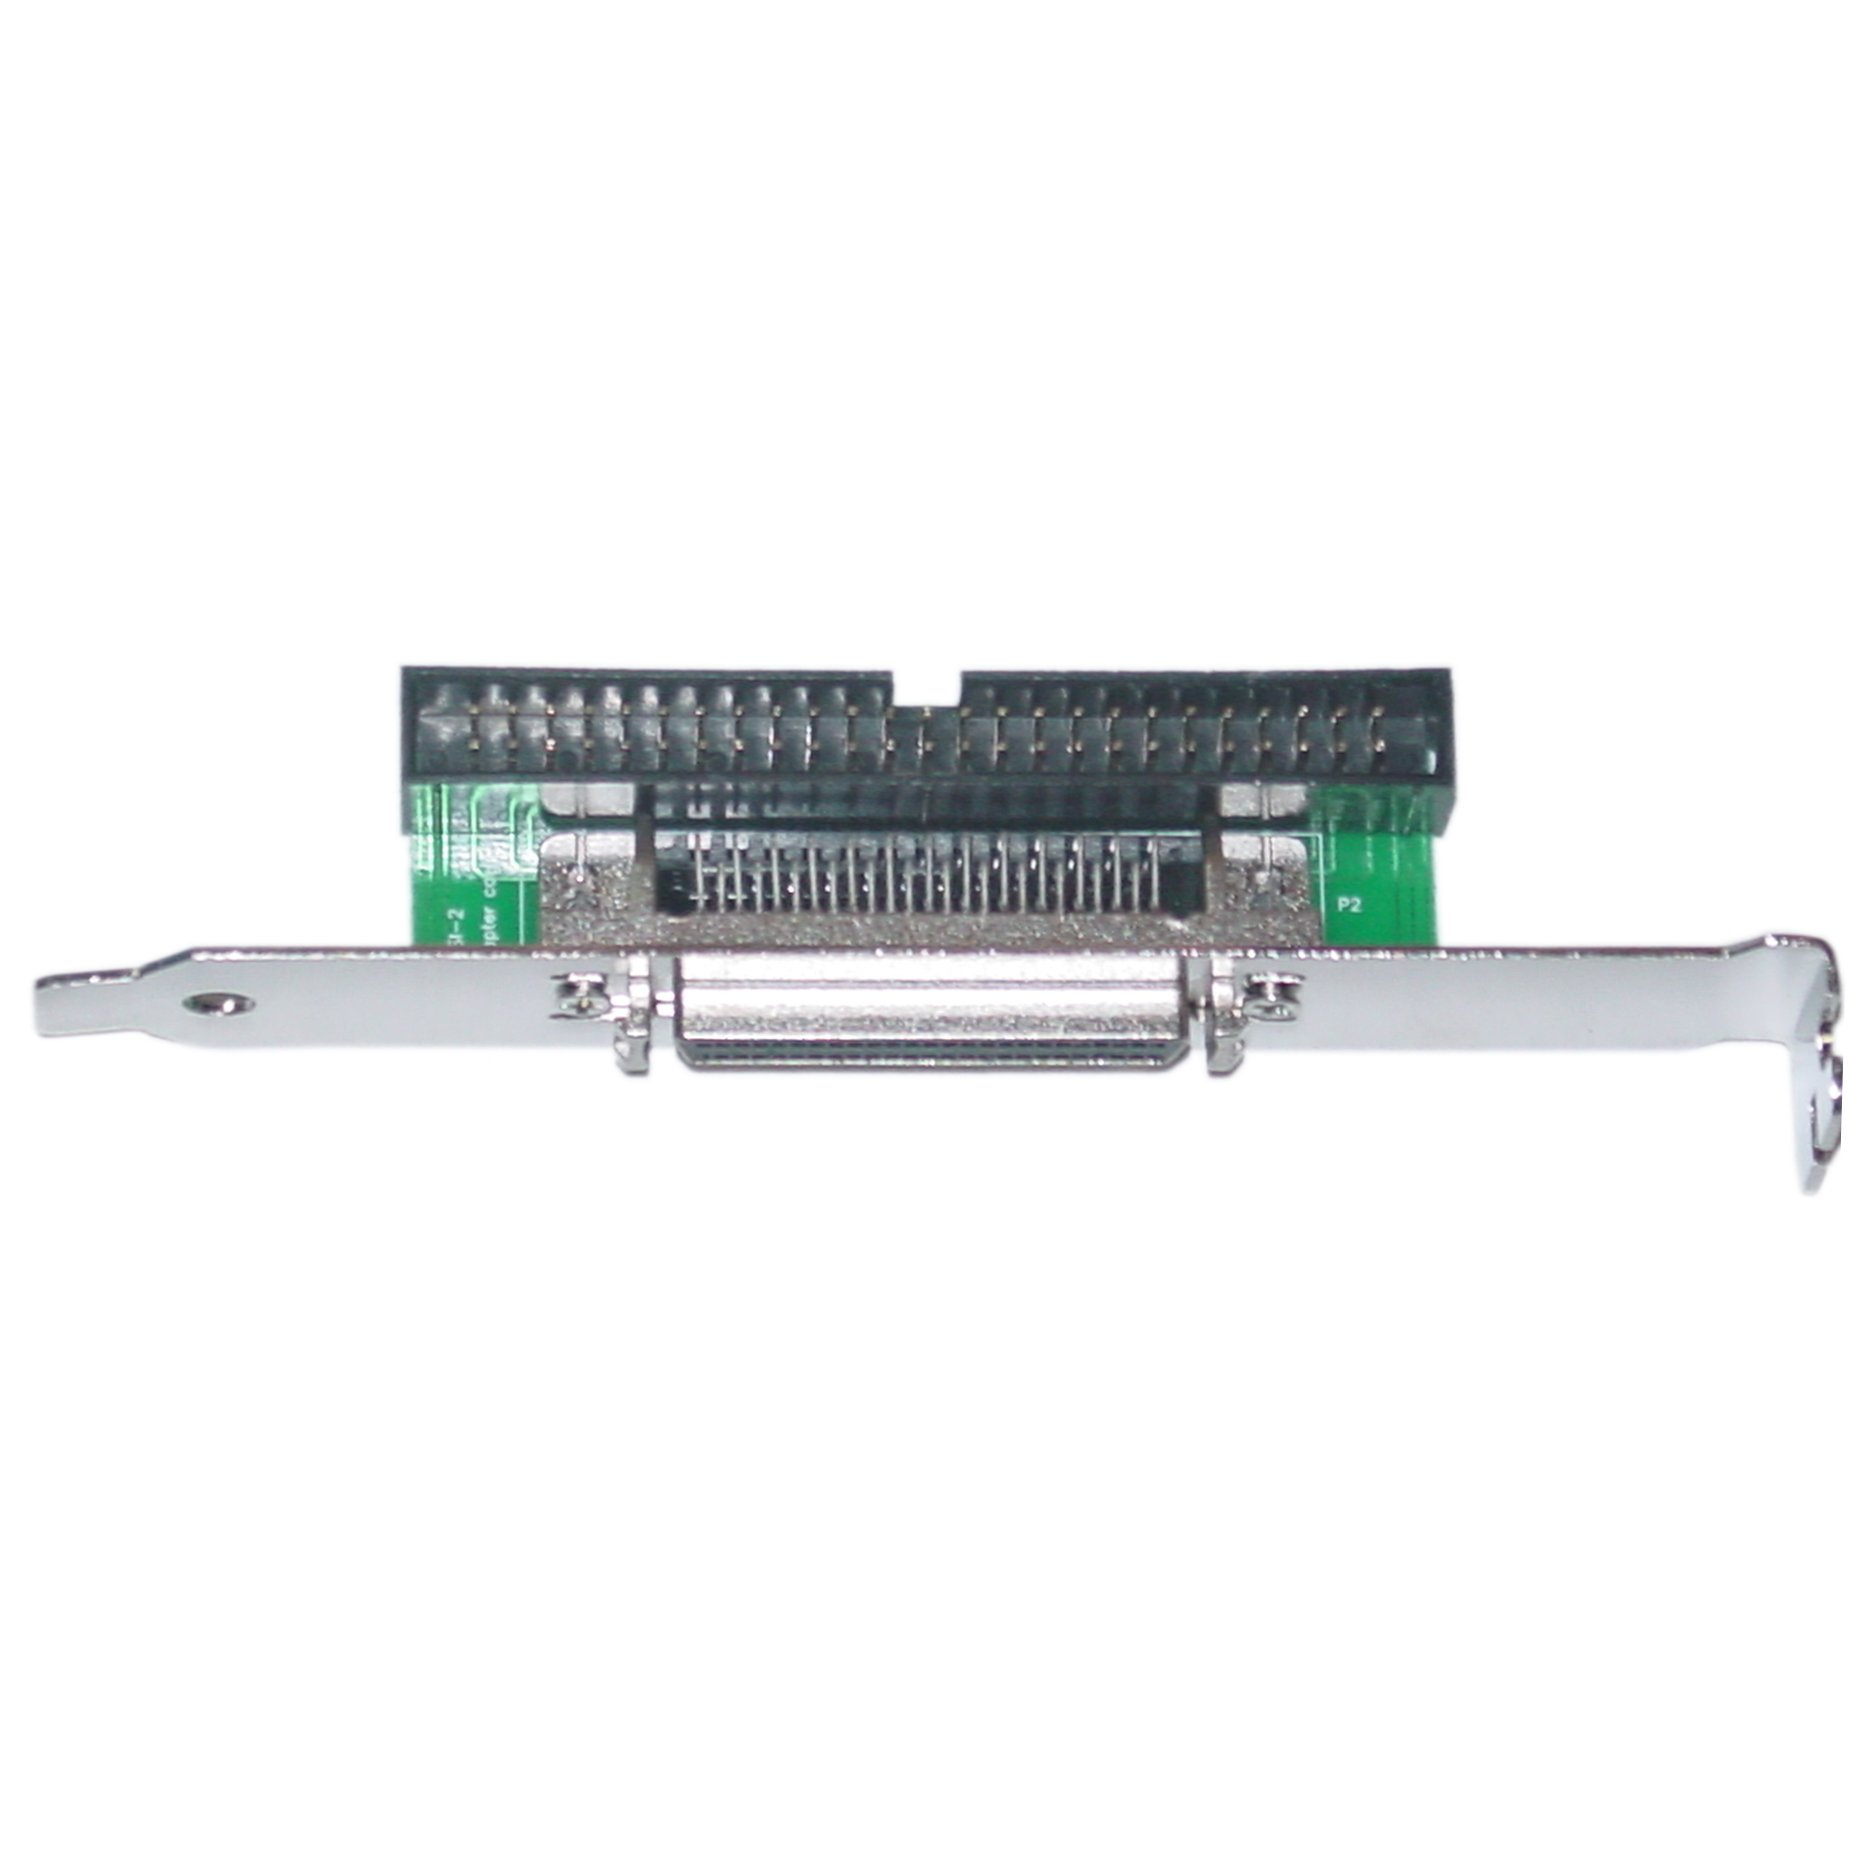 CableWholesale SCSI Computer Slot Adapter, Internal IDC 50 Male to External HPDB50 (Half Pitch DB50) Female by CableWholesale